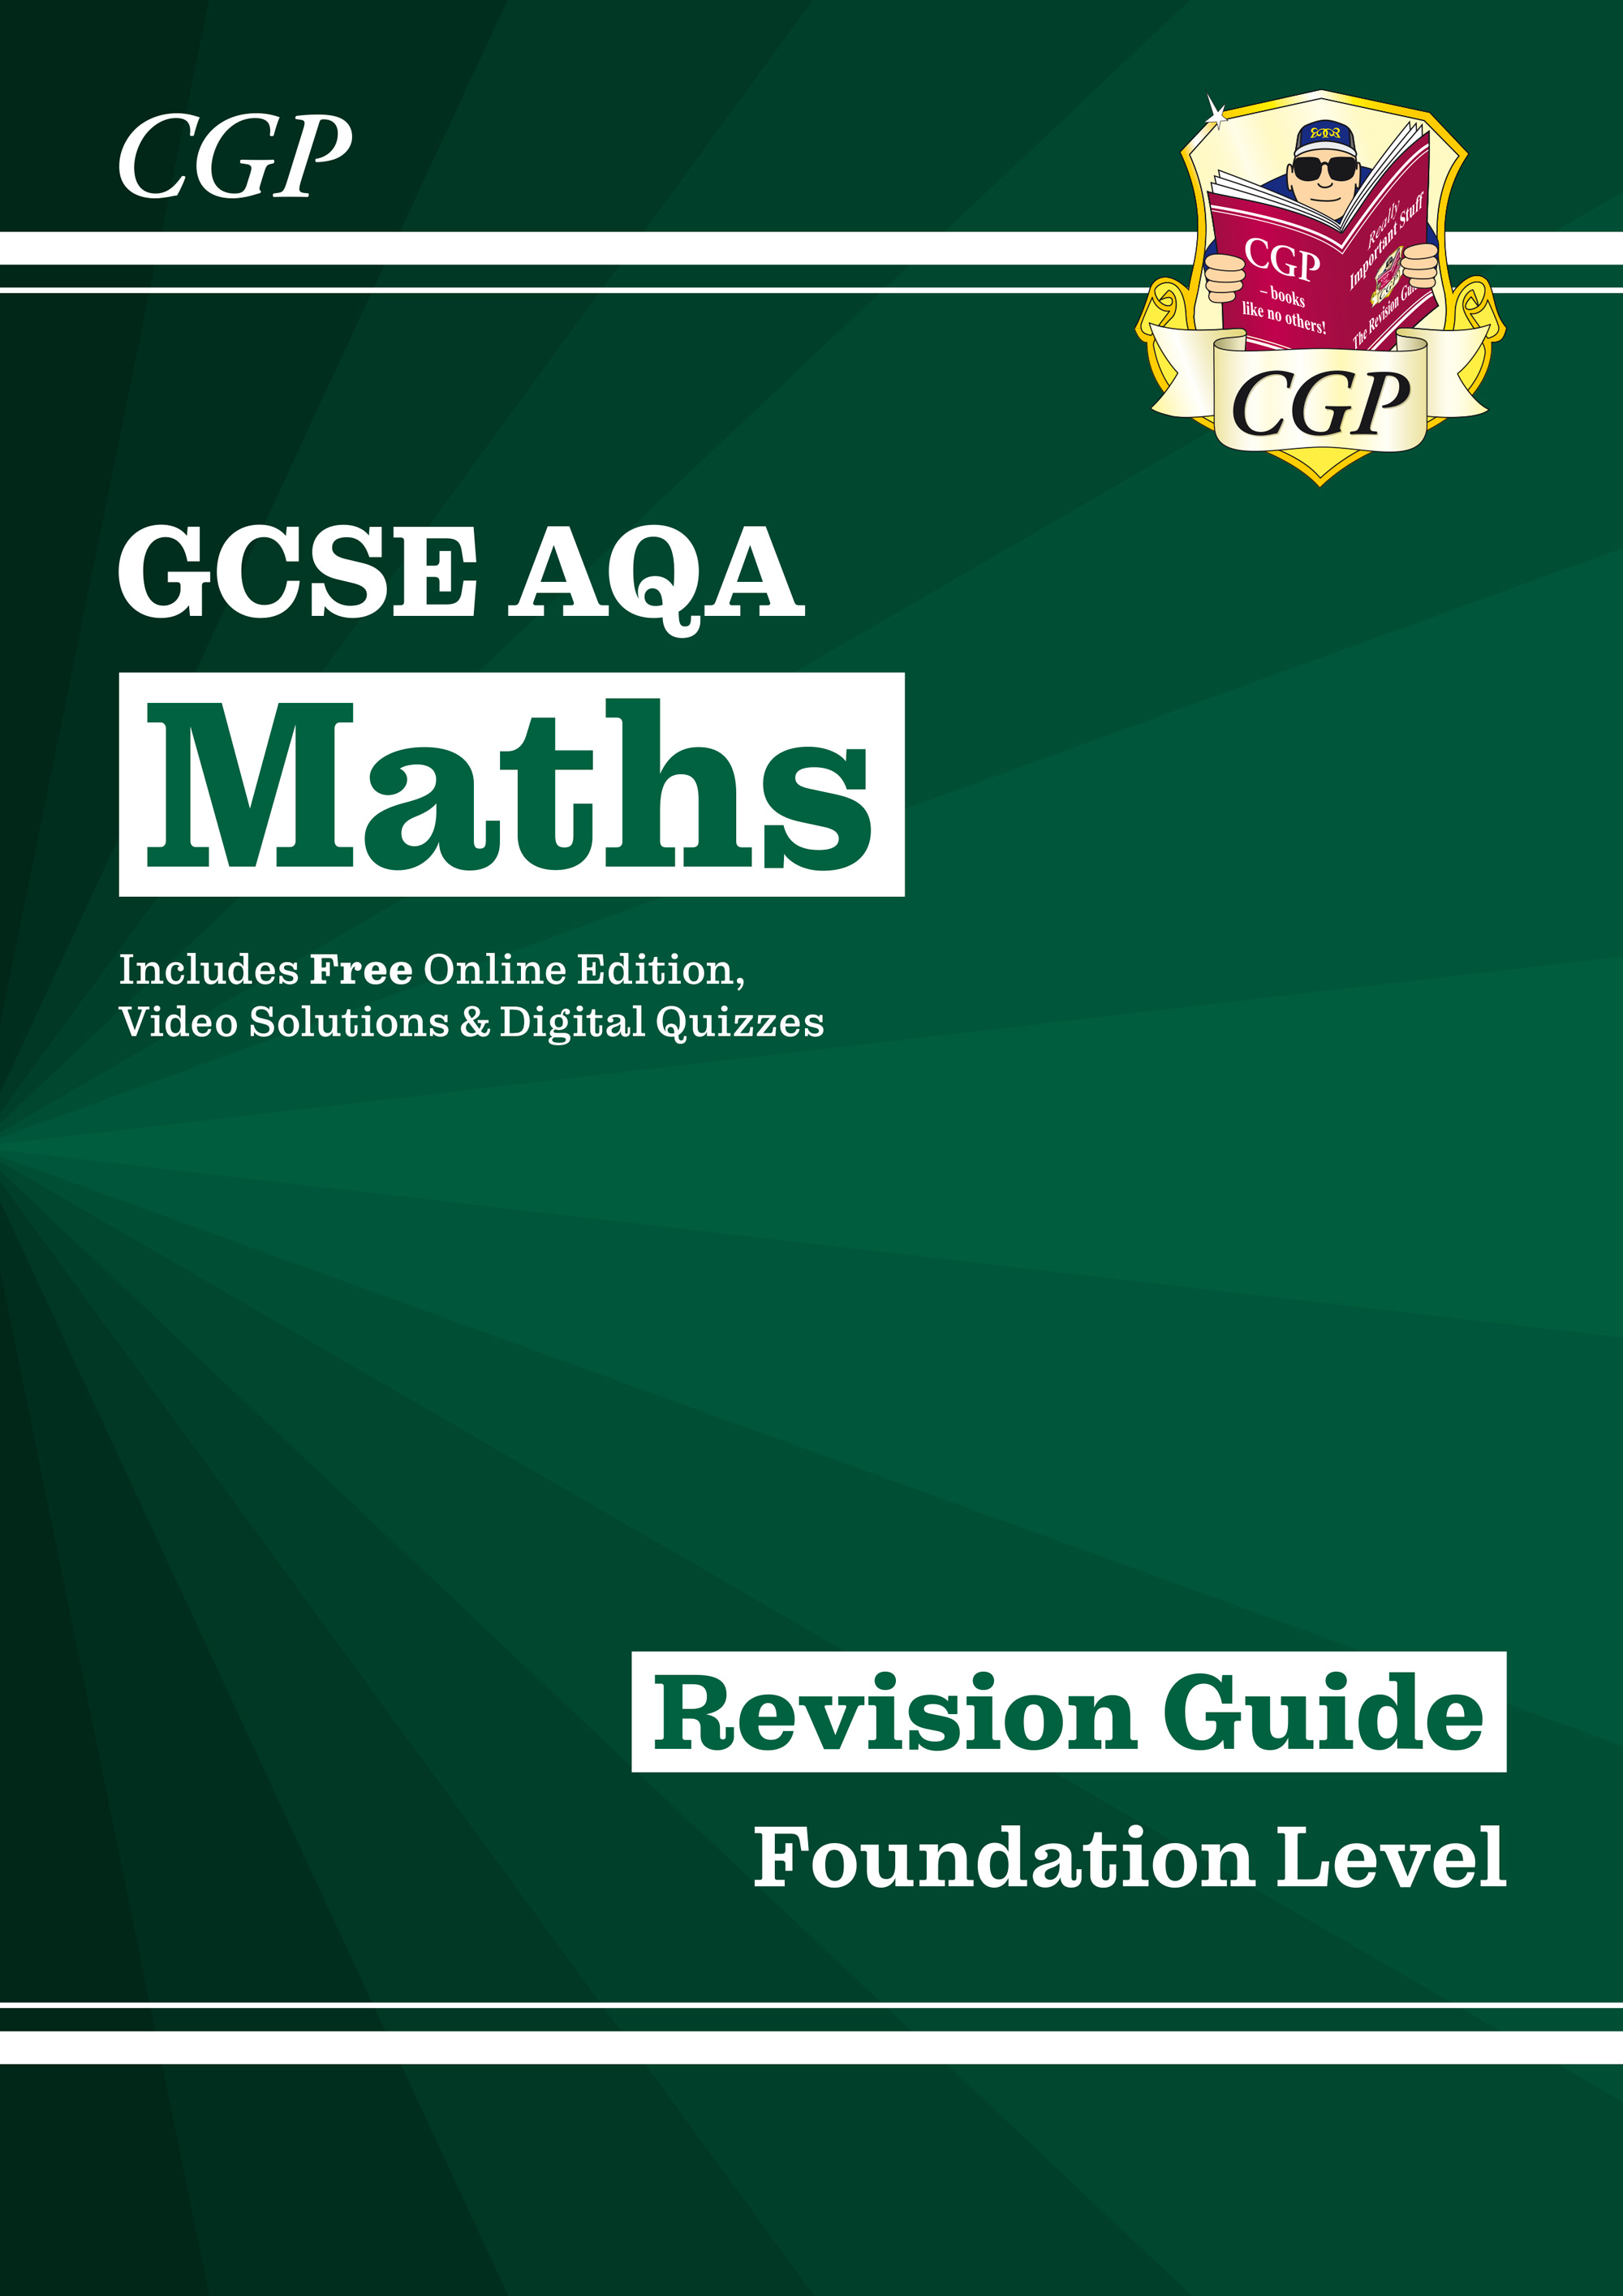 MQFR47 - New 2021 GCSE Maths AQA Revision Guide: Foundation inc Online Edition, Videos & Quizzes